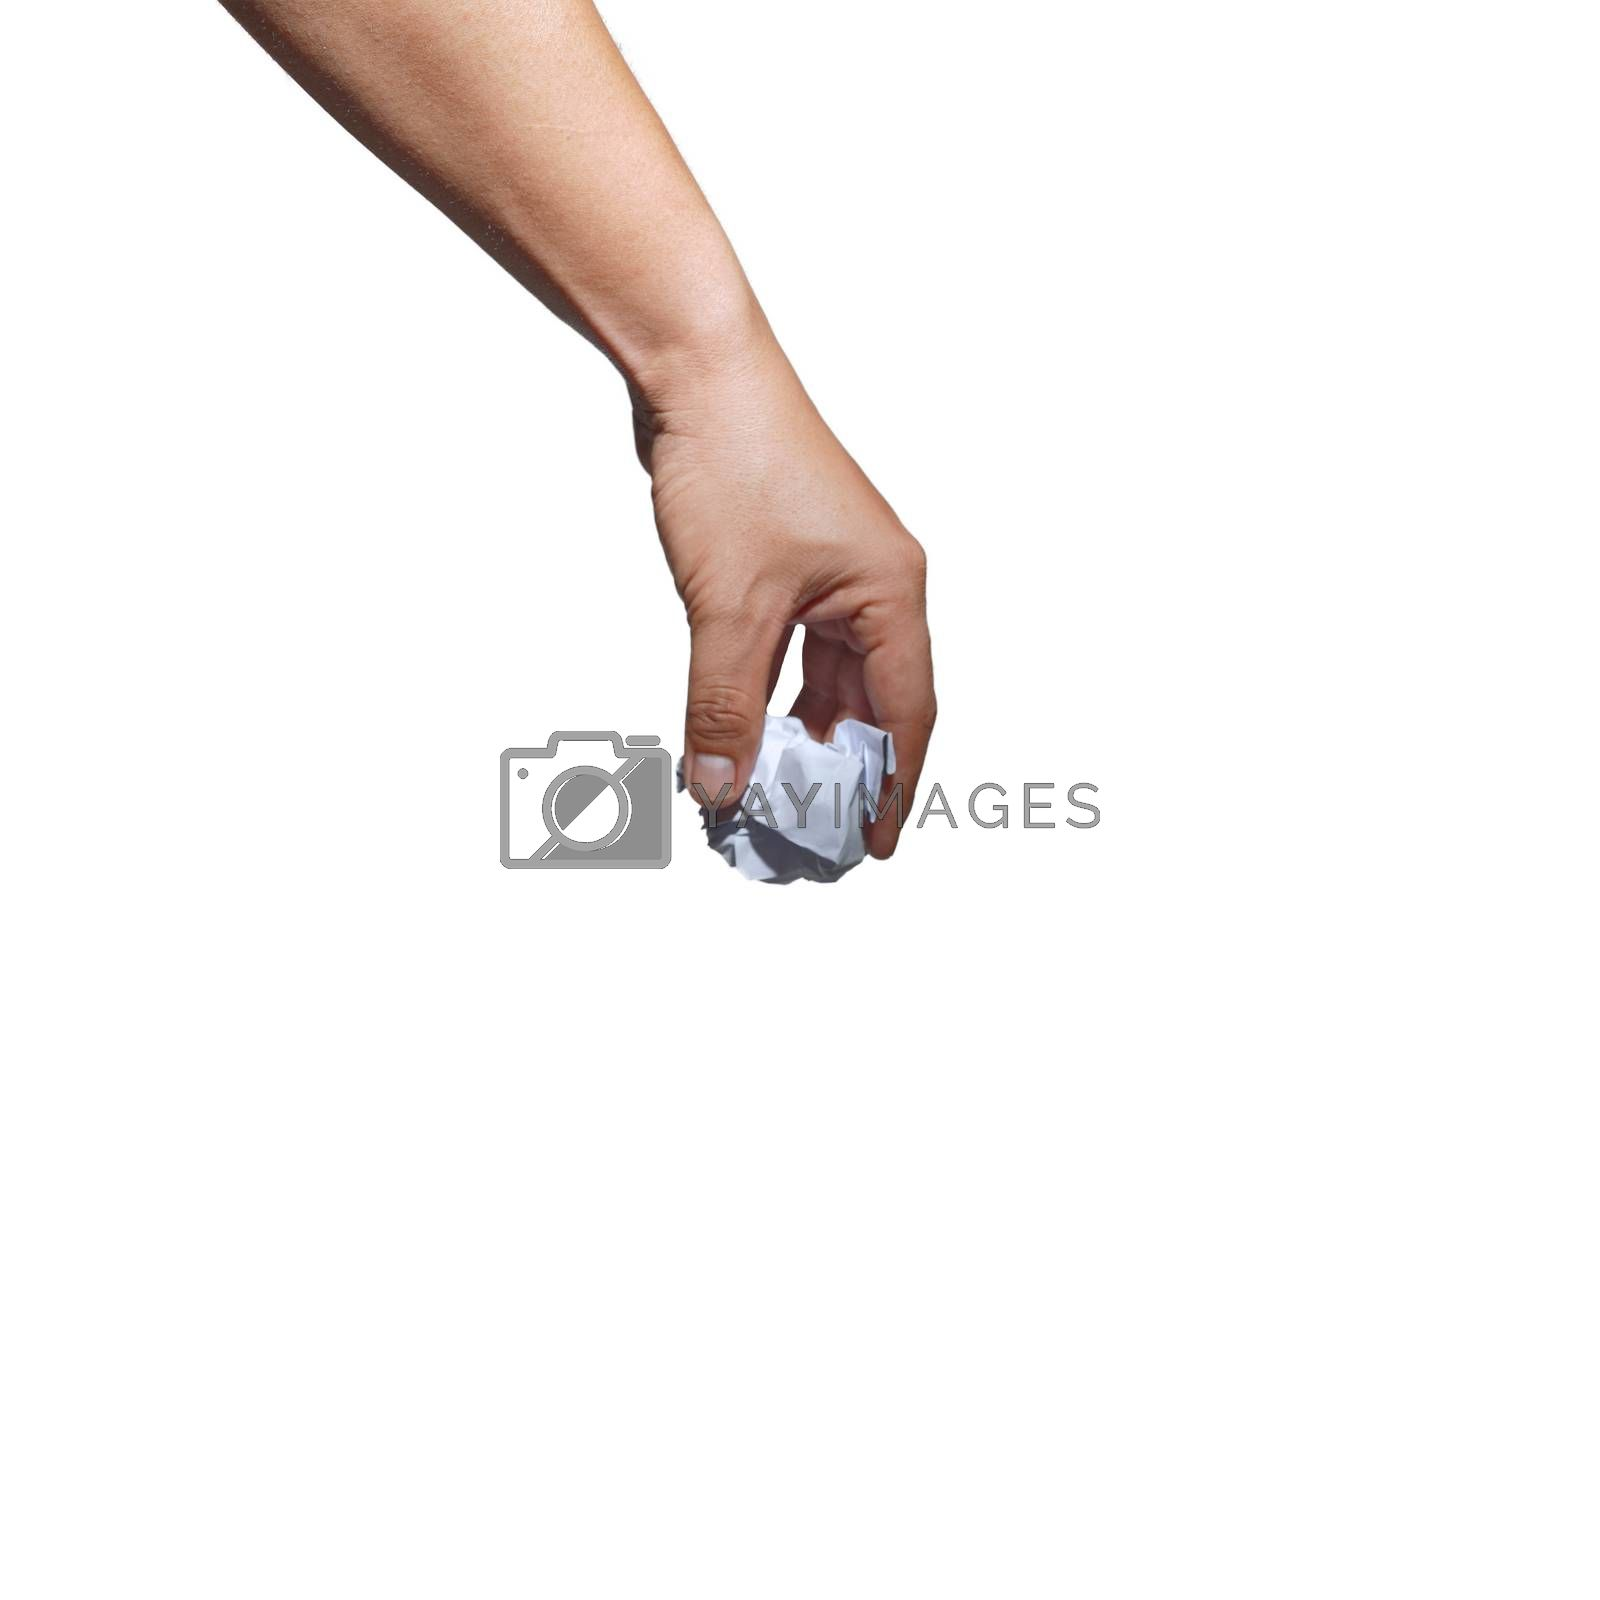 Abstract Environmental Protection Hand Left Office Waste Paper Isolated White Background.